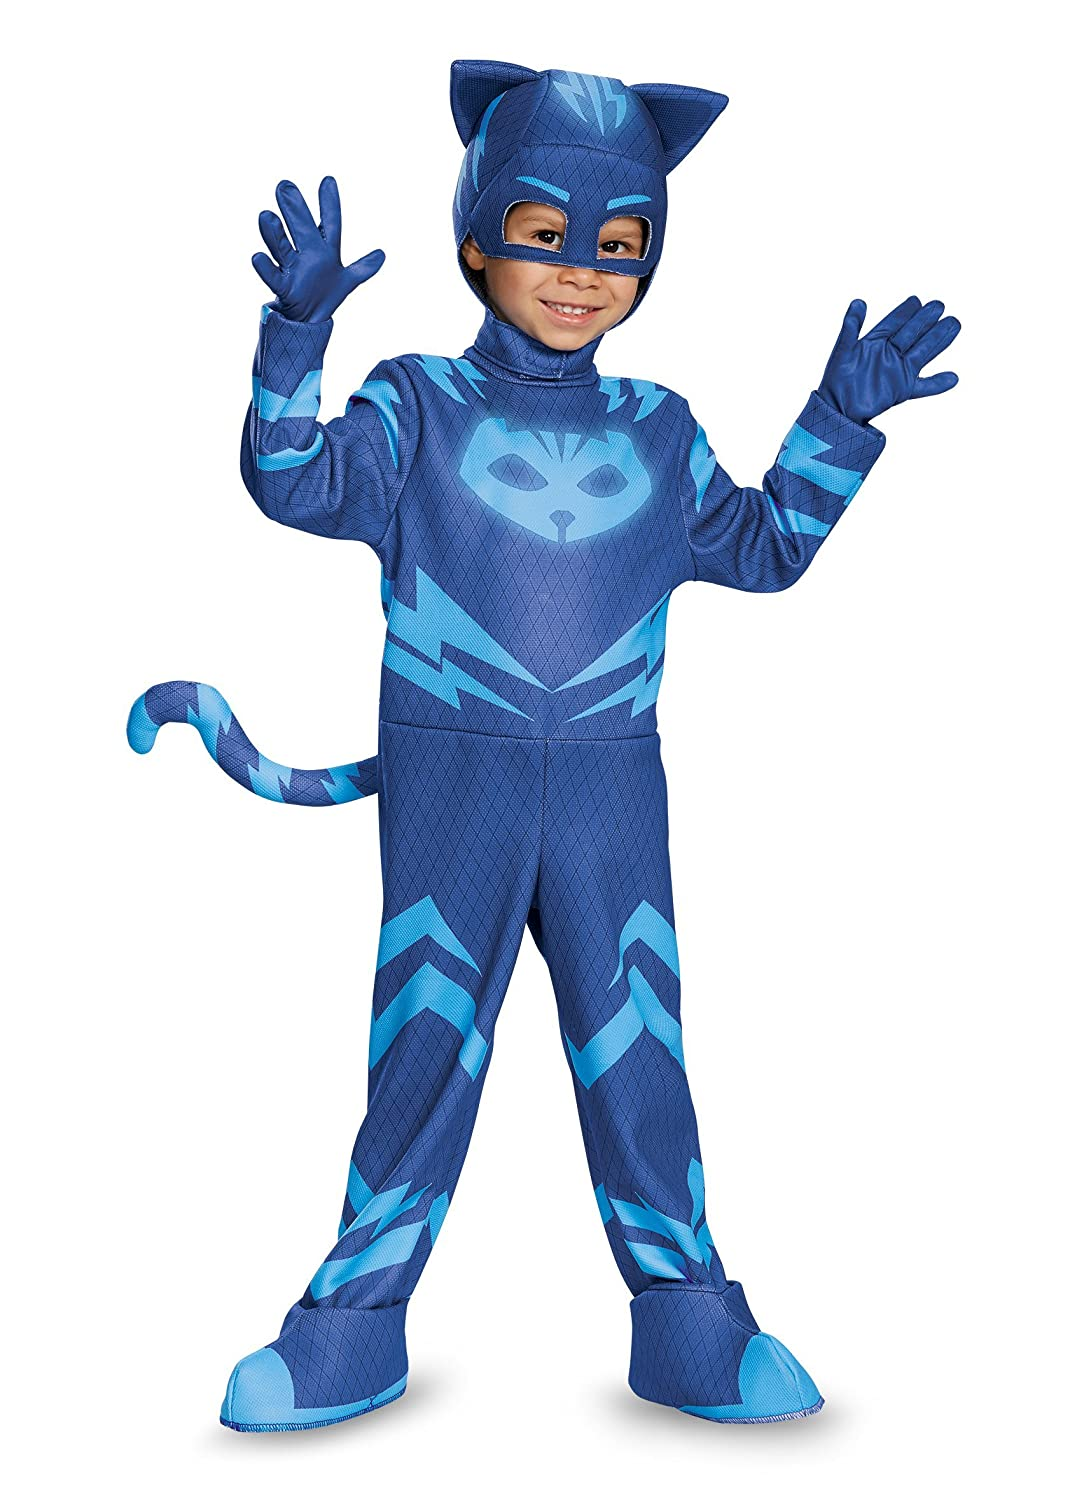 Catboy Deluxe Toddler PJ Masks Costume, Large/4-6